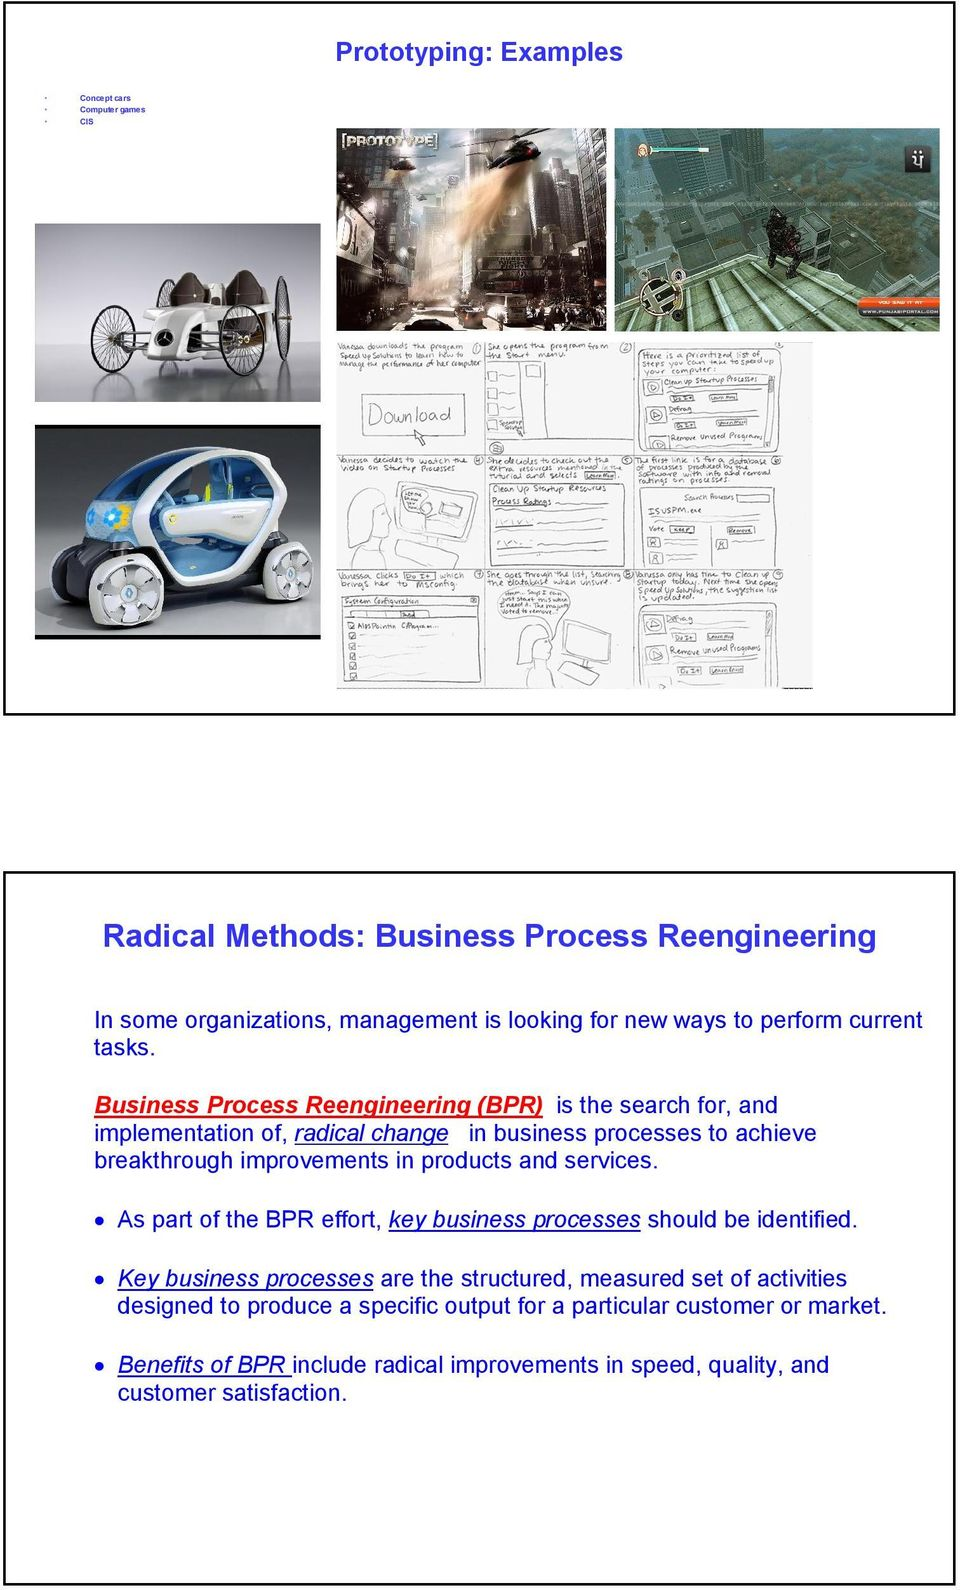 Business Process Reengineering (BPR) is the search for, and implementation of, radical change in business processes to achieve breakthrough improvements in products